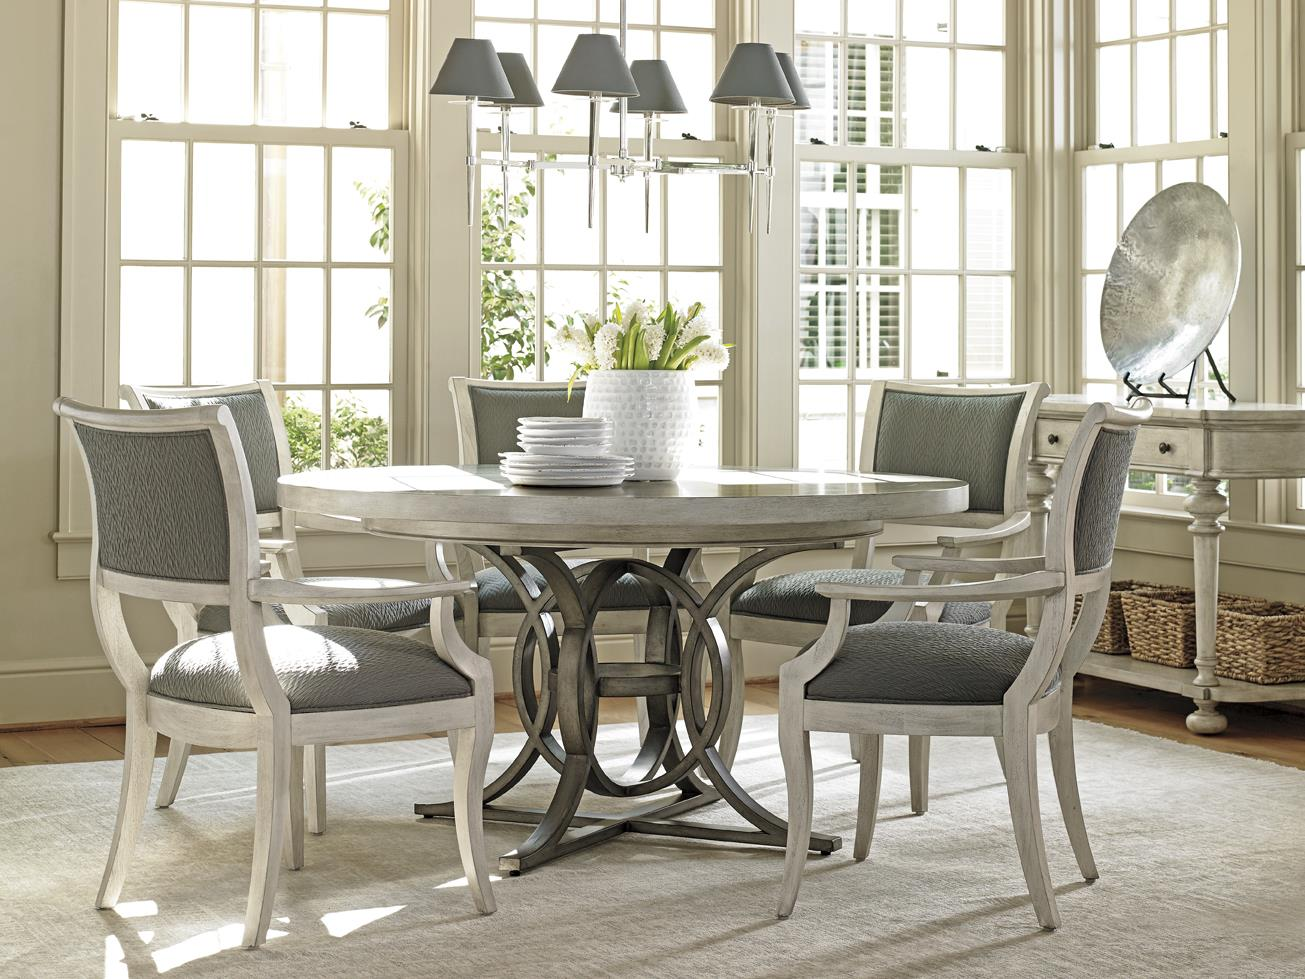 Lexington Oyster Bay 714 875C Calerton Round Dining Table